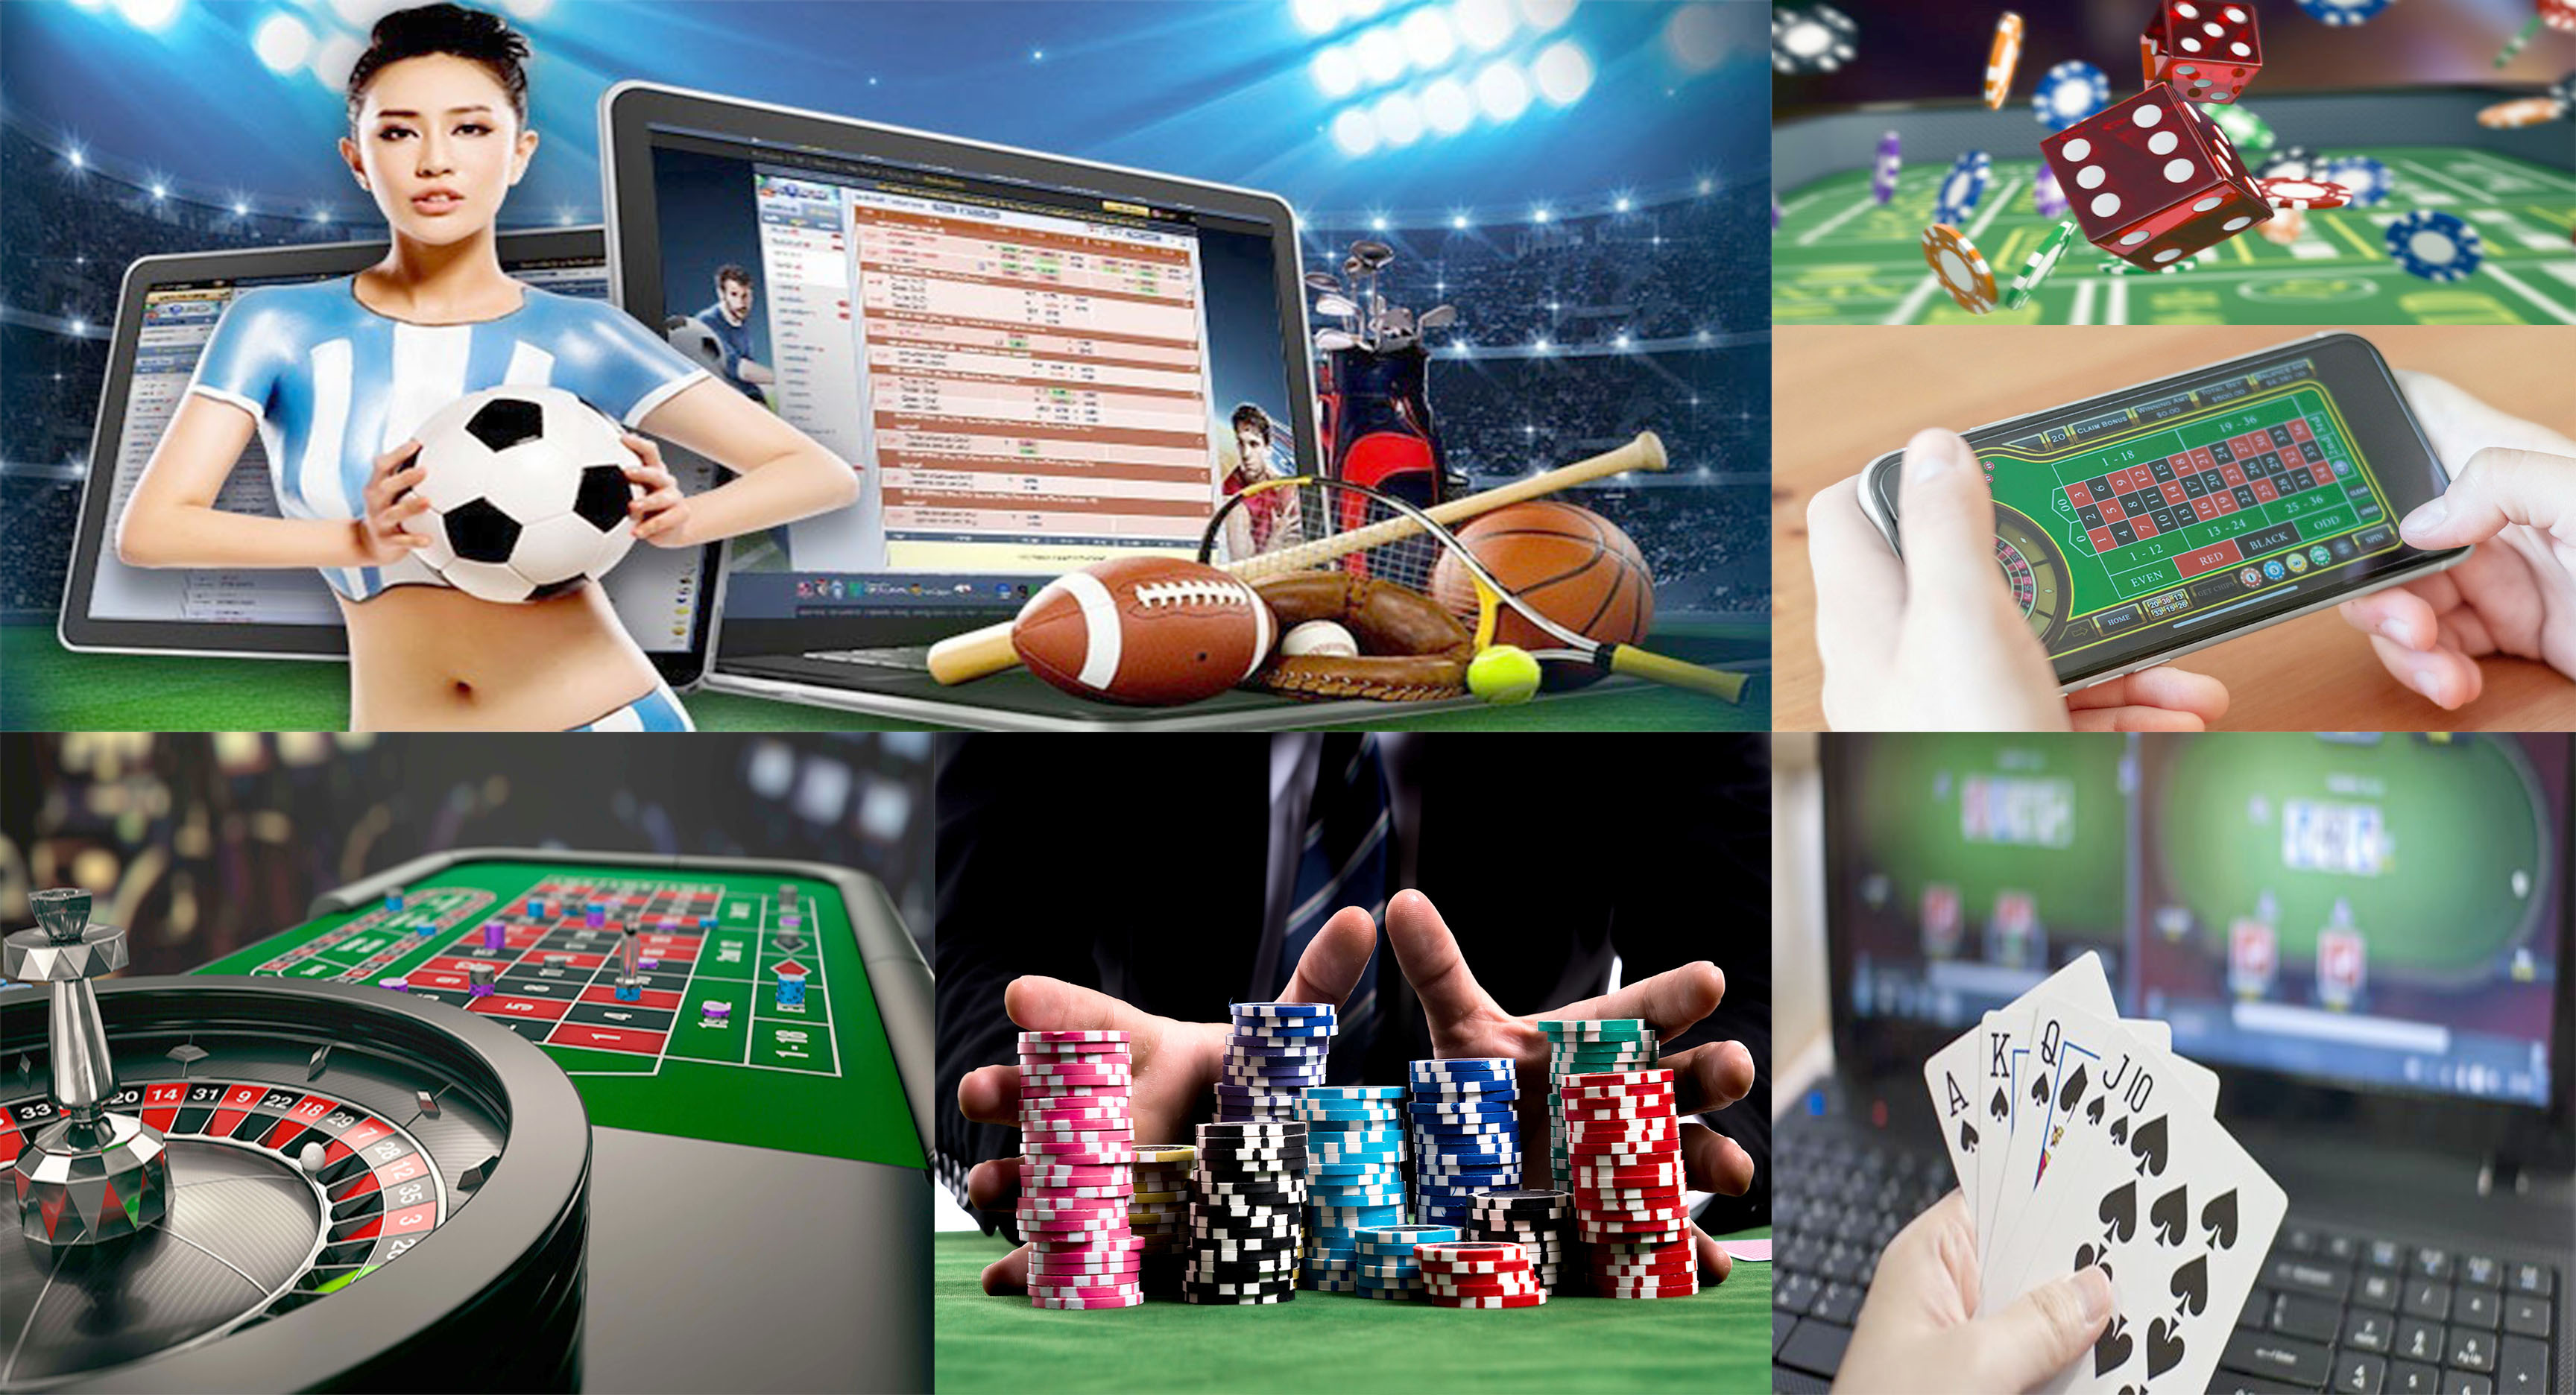 Rank Your Website with 30 Days Drip Feed 60 Gambling,Poker,Betting,Casino,Slot PBN Backlinks